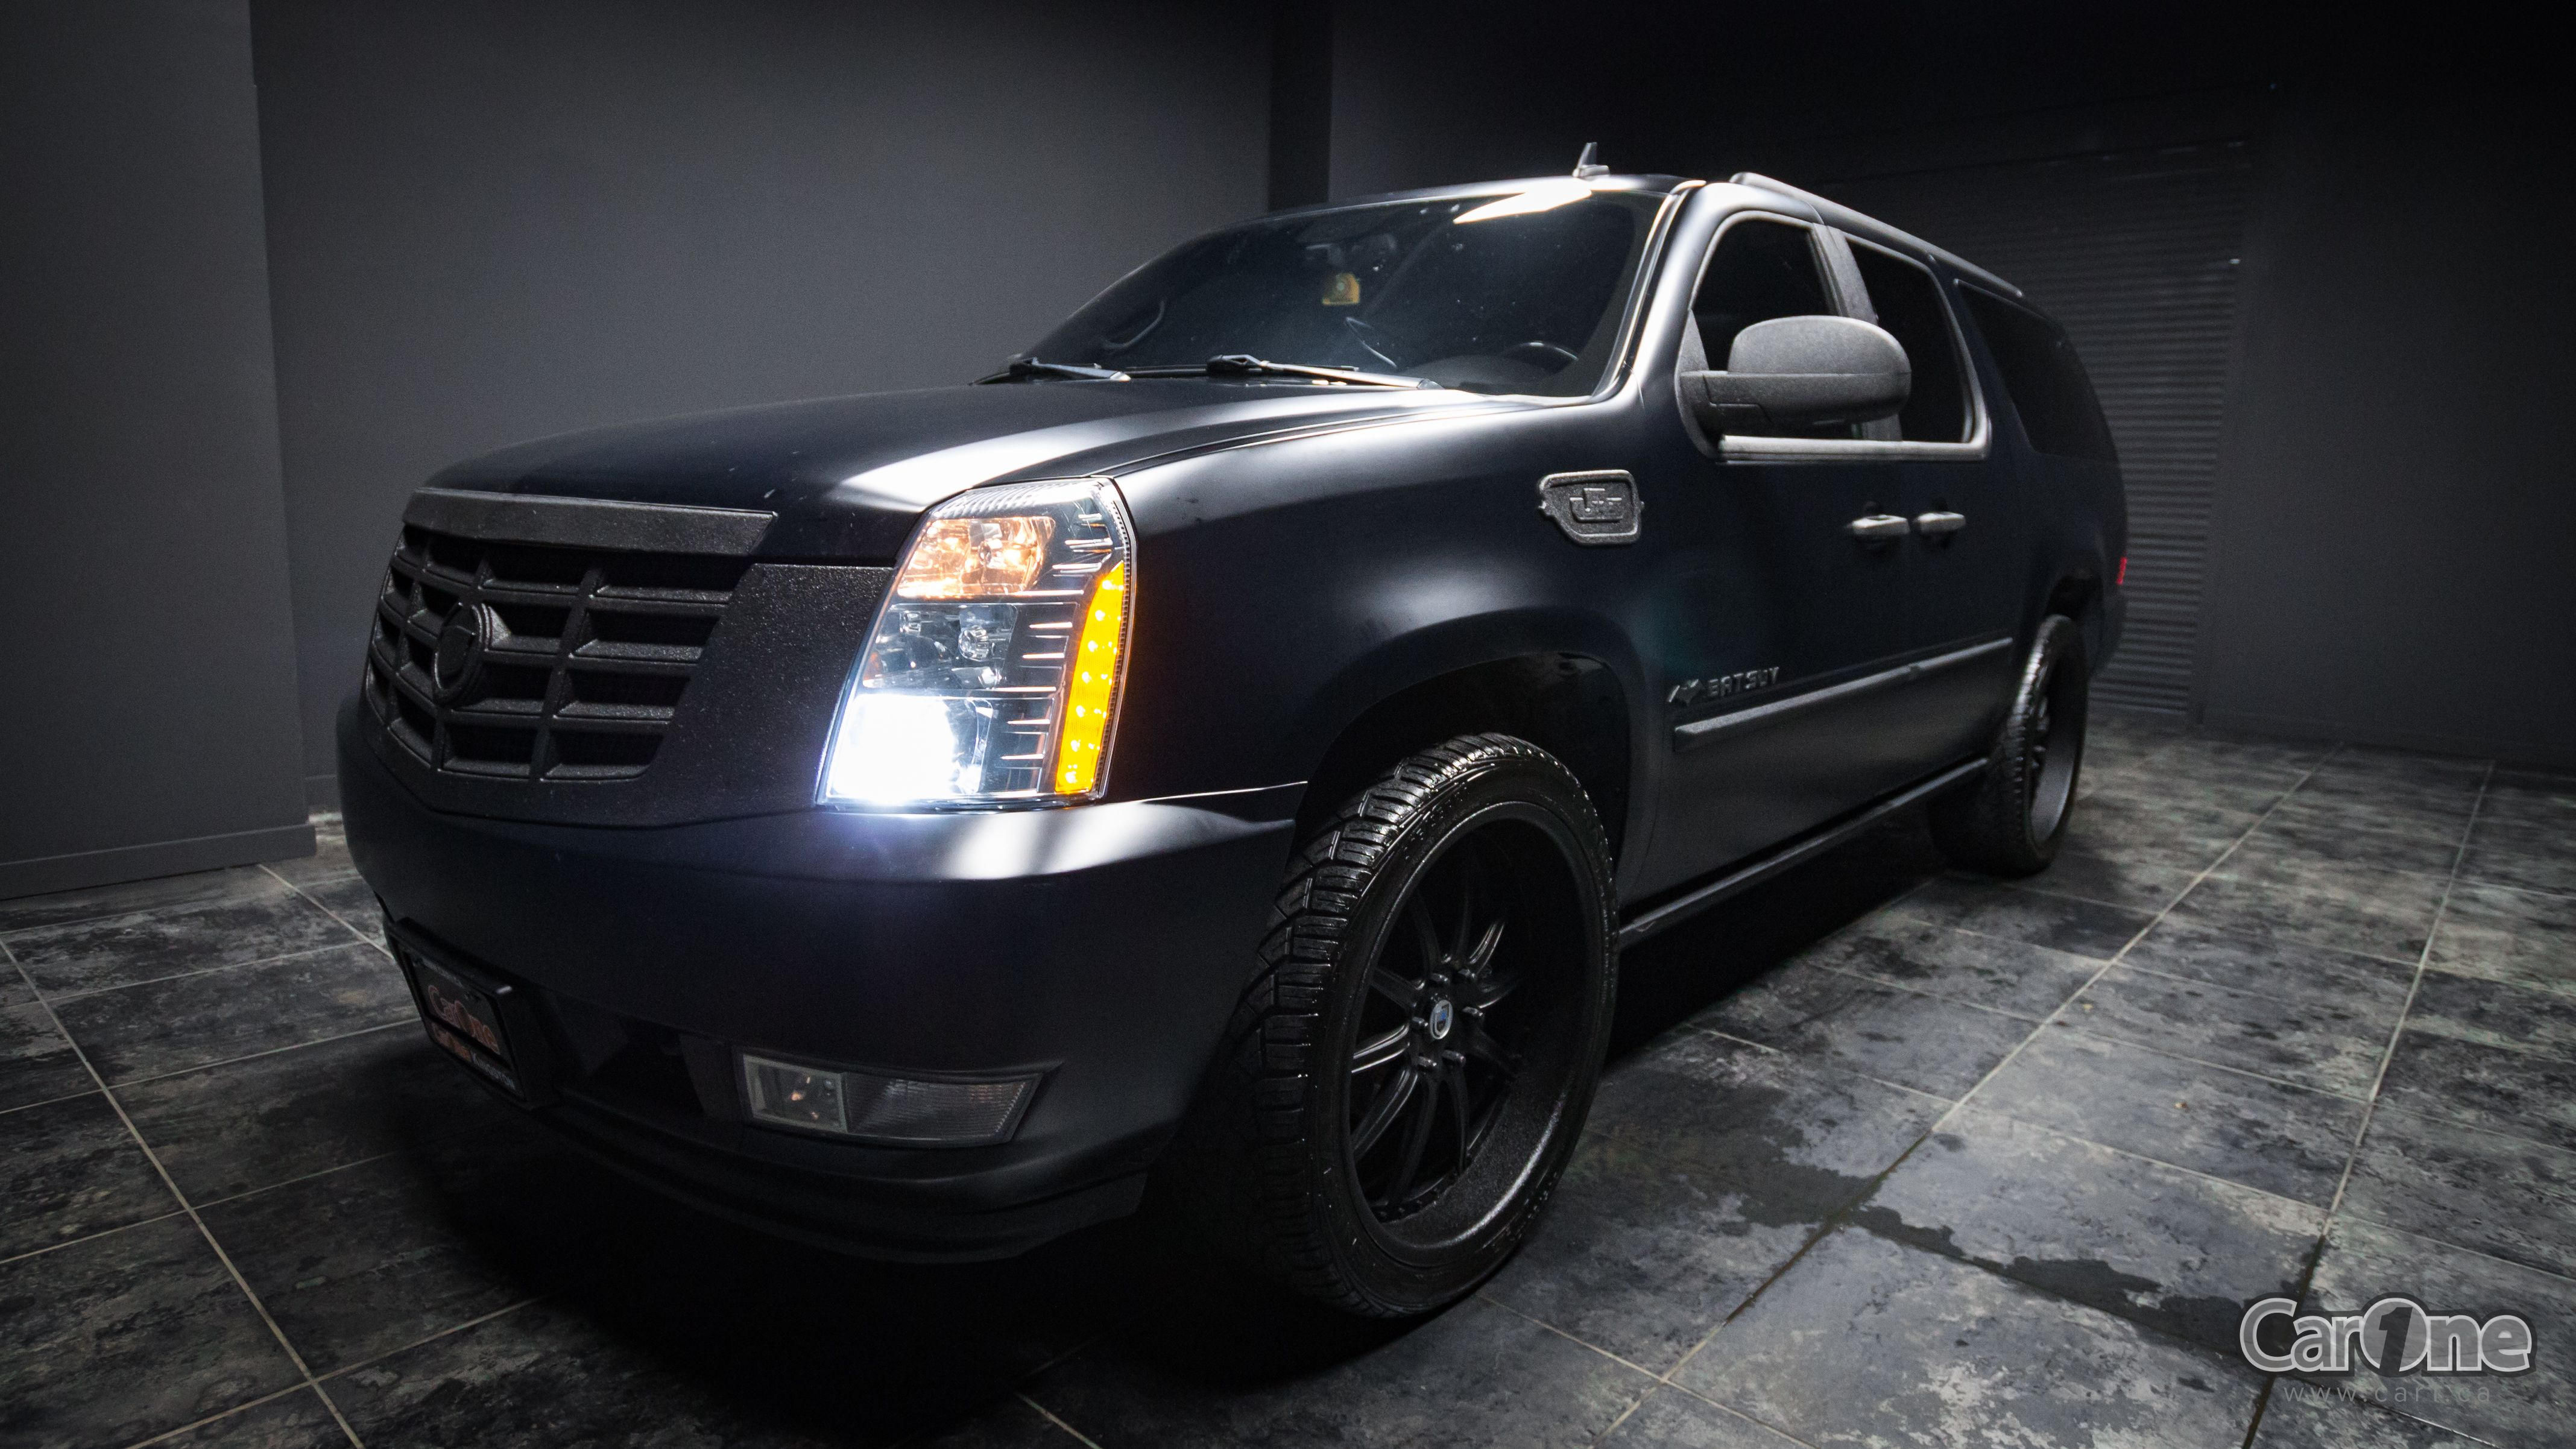 West Coast Customs Cars For Sale >> Pin On Carone Inventory